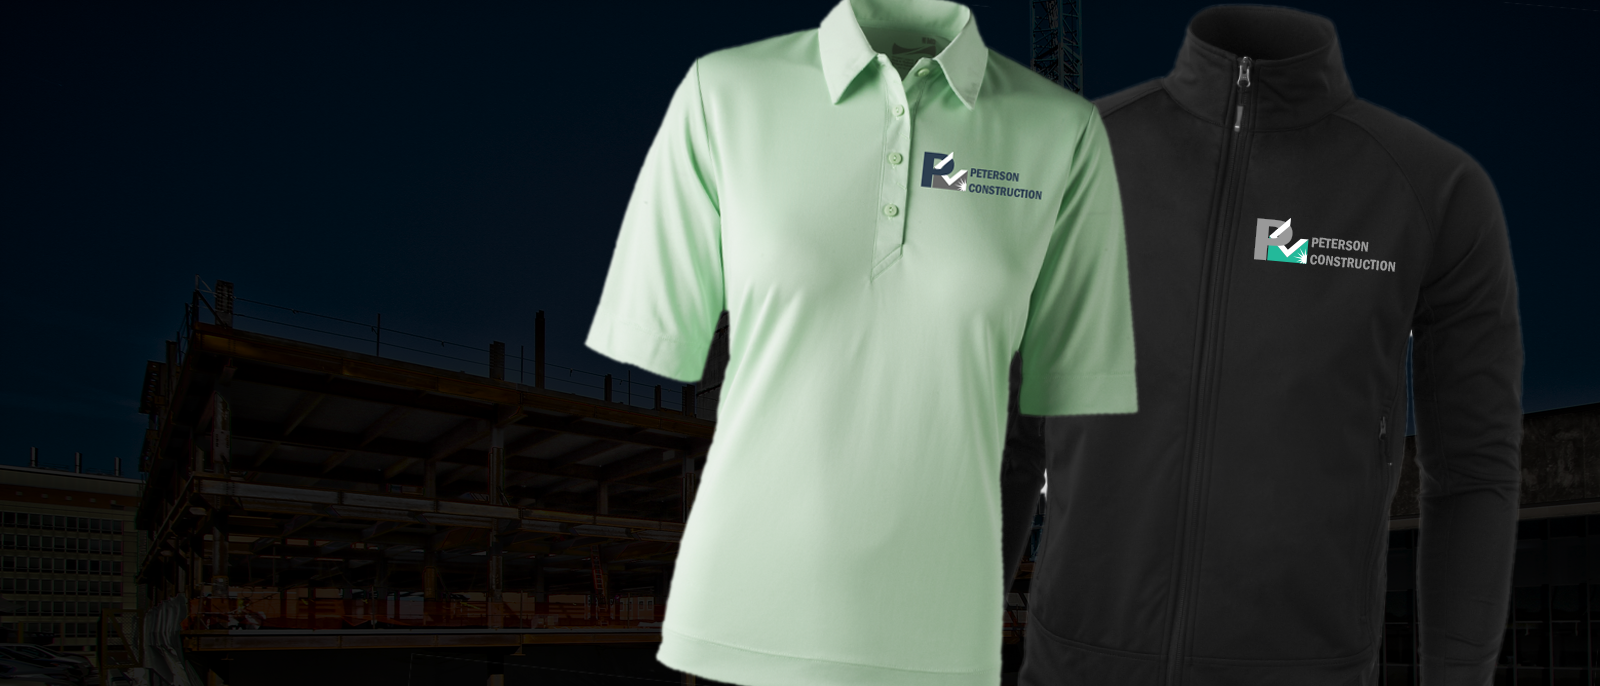 Peterson Construction Company Store - Apparel